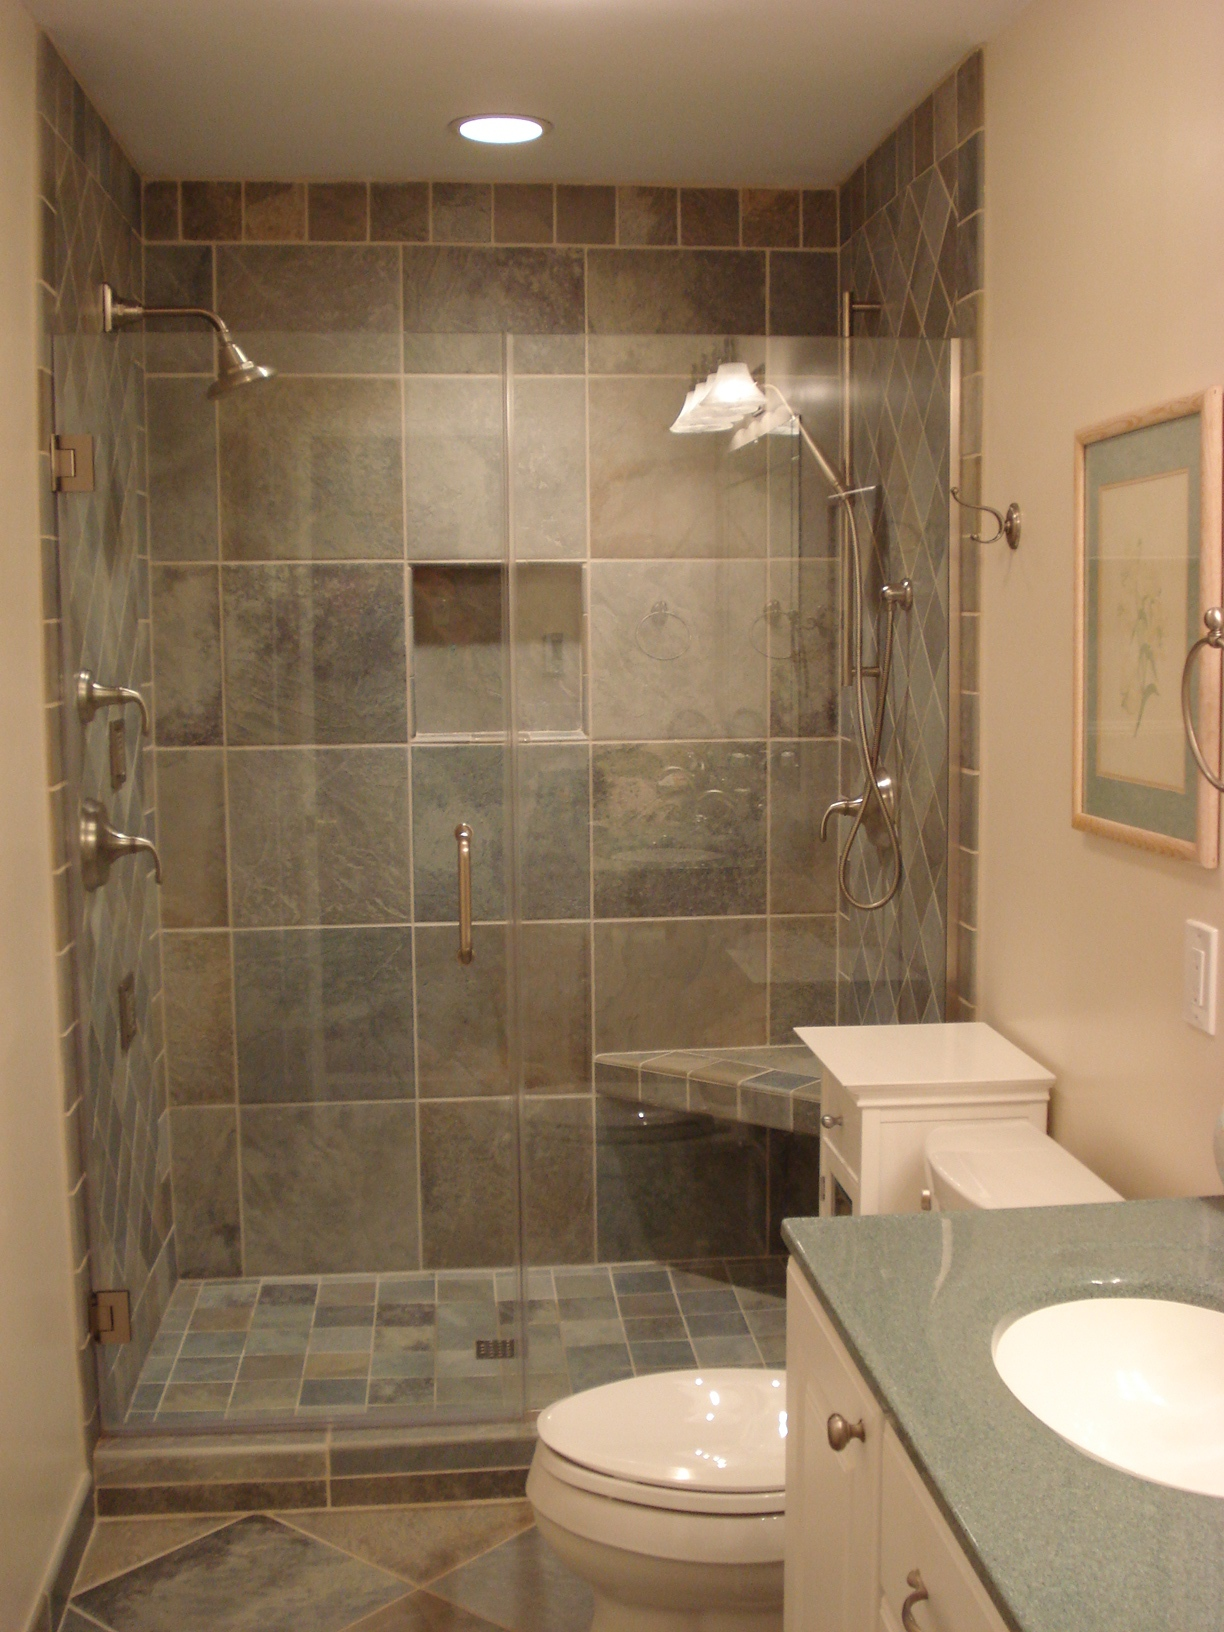 Bathroom Renovation Ideas Uk how much for a small bathroom renovation uk - kahtany